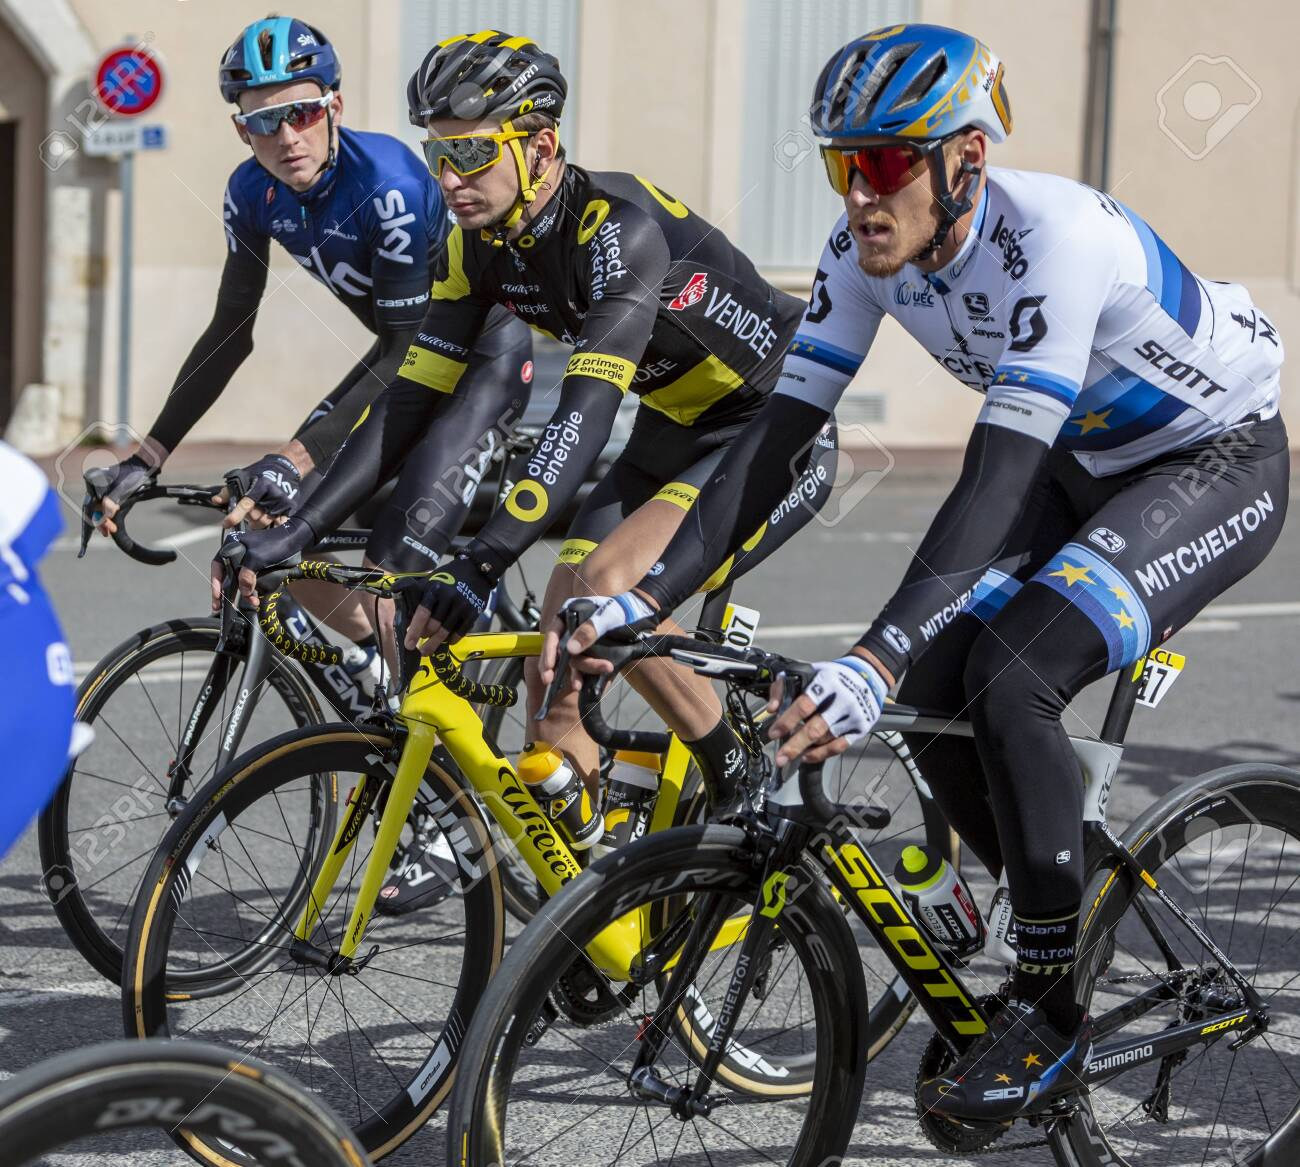 Chatillon-Coligny, France - March 10, 2019: Three cyclists (Matteo Trent of Mitchelton-Scott Team, Anthony Turgis of Direct Energy Team, Tao Geoghegan Hart of Sky Team) riding in the peloton, in Chatillon-Coligny during the stage 3 of Paris-Nice 2019. - 126924395